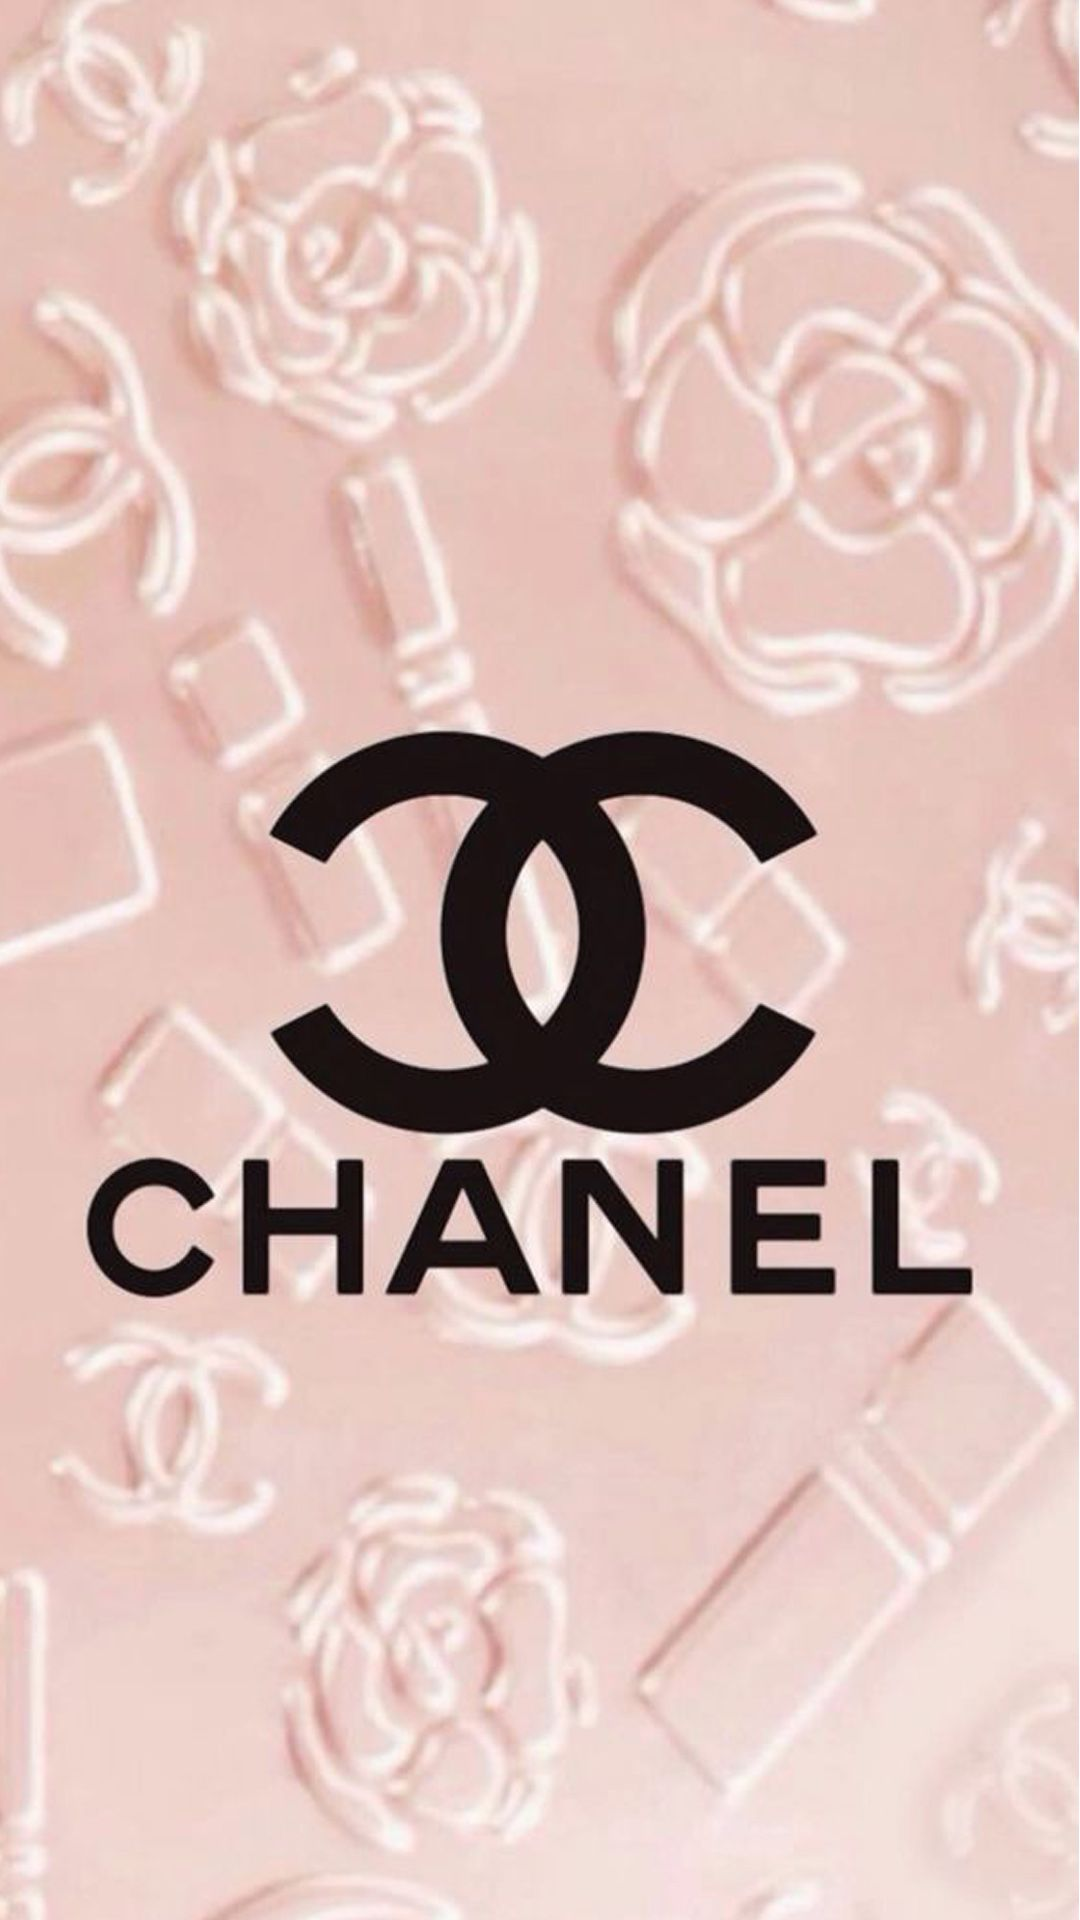 Coco Chanel Iphone Wallpapers Top Free Coco Chanel Iphone Backgrounds Wallpaperaccess